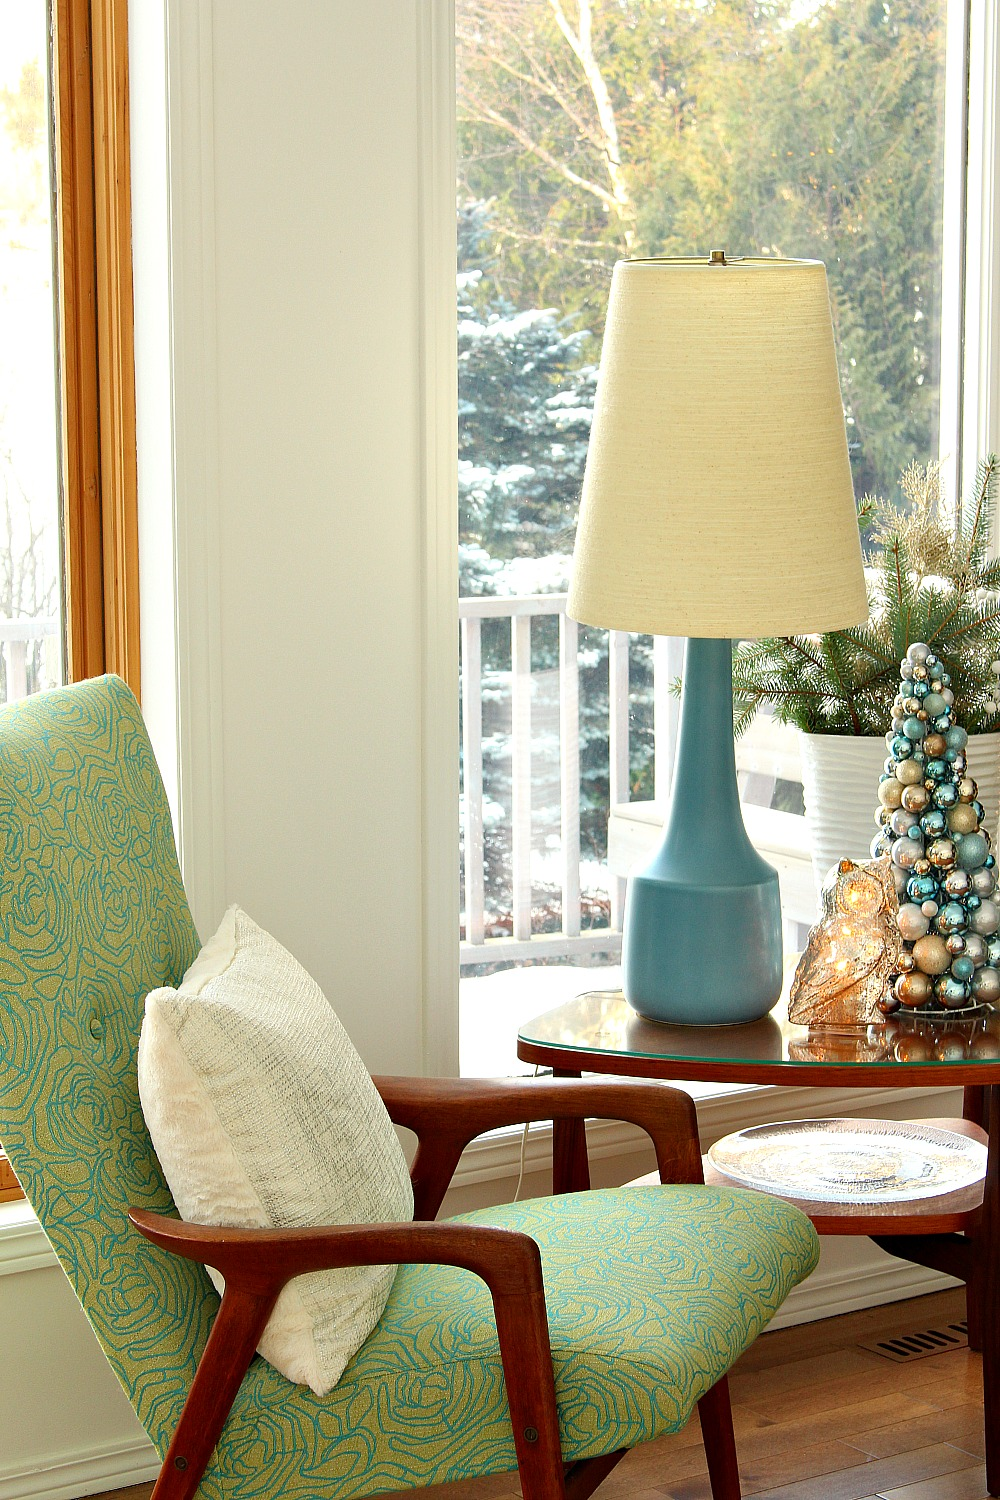 Wintry Blue + White Holiday Decorating Ideas | Dans le Lakehouse